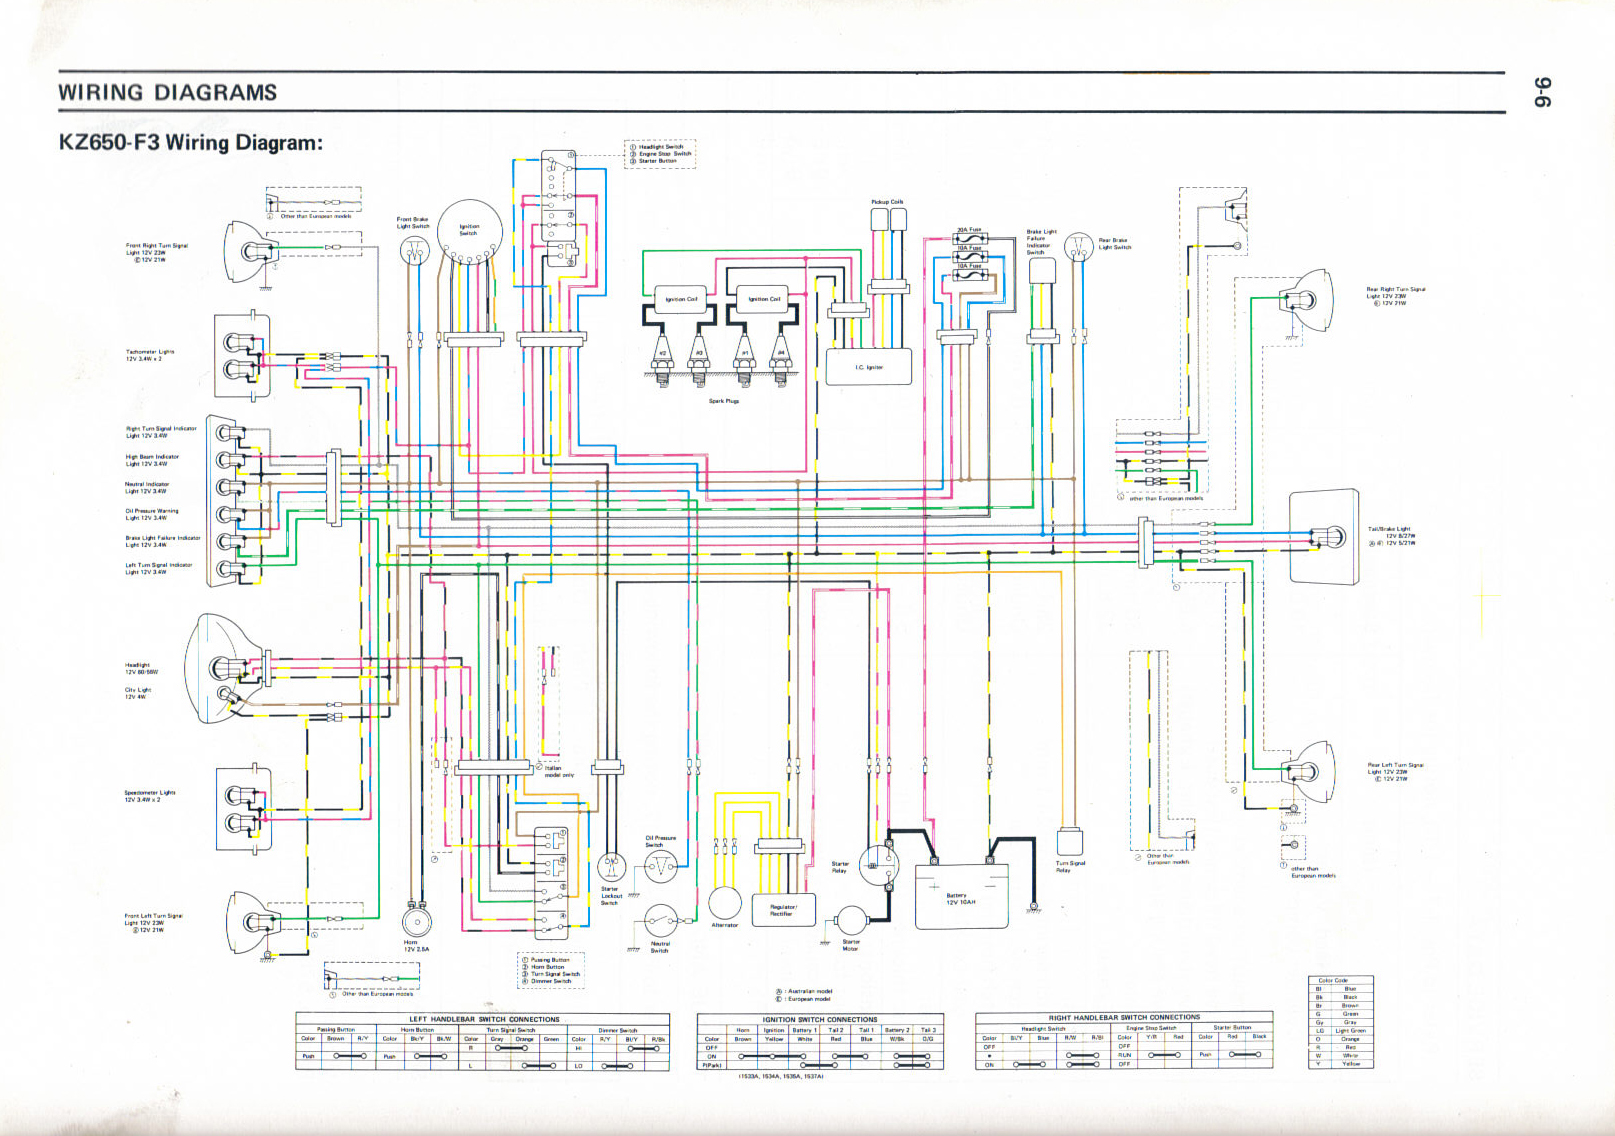 KZ650 F3 wiring diagram for kawasaki zx6r 100 images fuel tank switch z650 wiring diagram at reclaimingppi.co